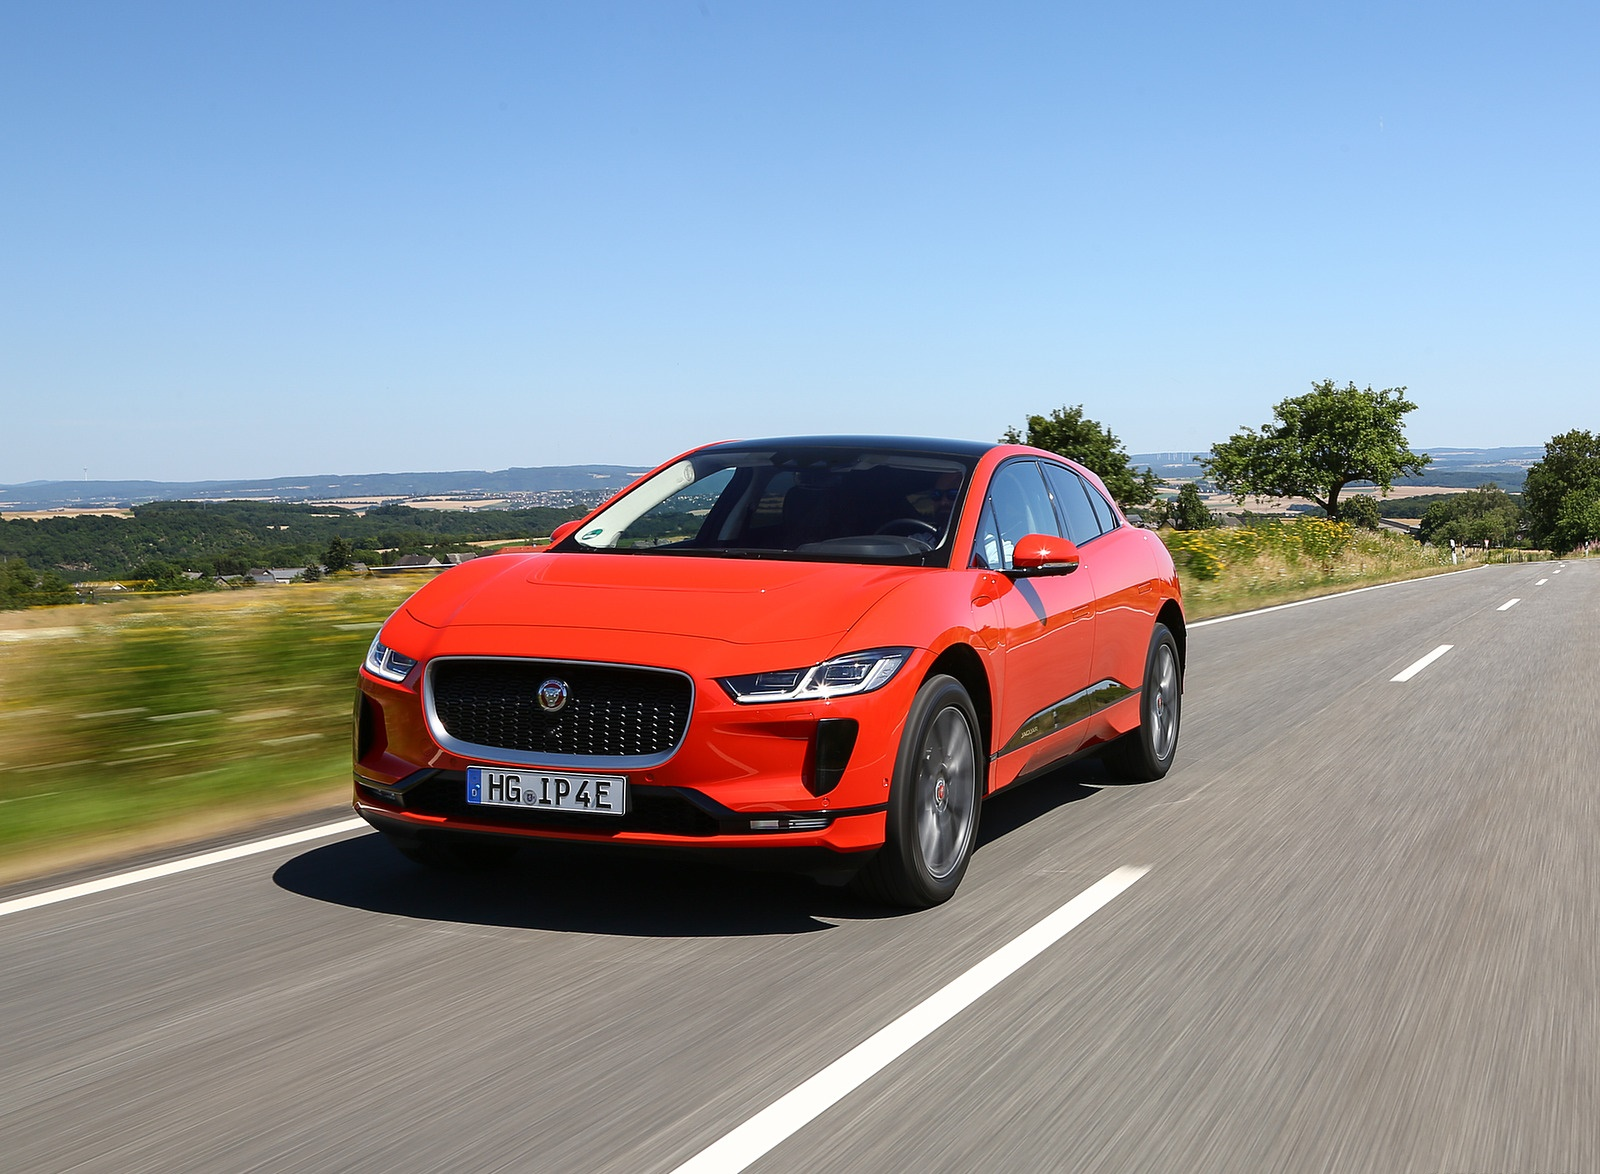 2019 Jaguar I-PACE EV400 AWD HSE First Edition (Color: Photon Red) Front Three-Quarter Wallpapers #20 of 192